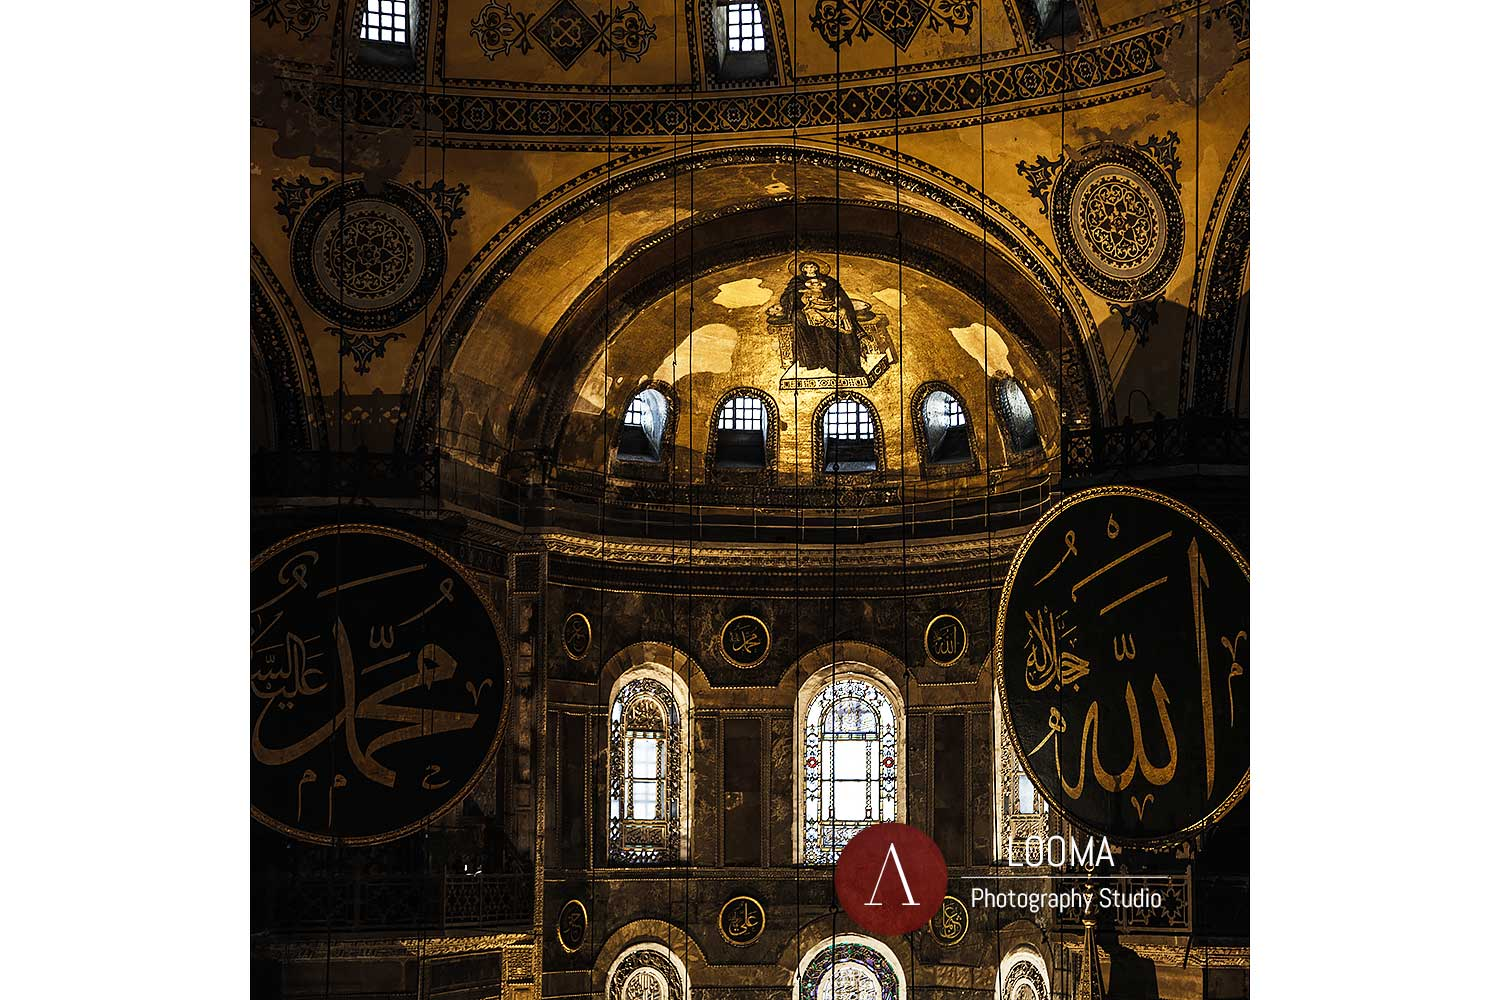 Architecture and heritage Photography - Hagia Sophia - Istanbul